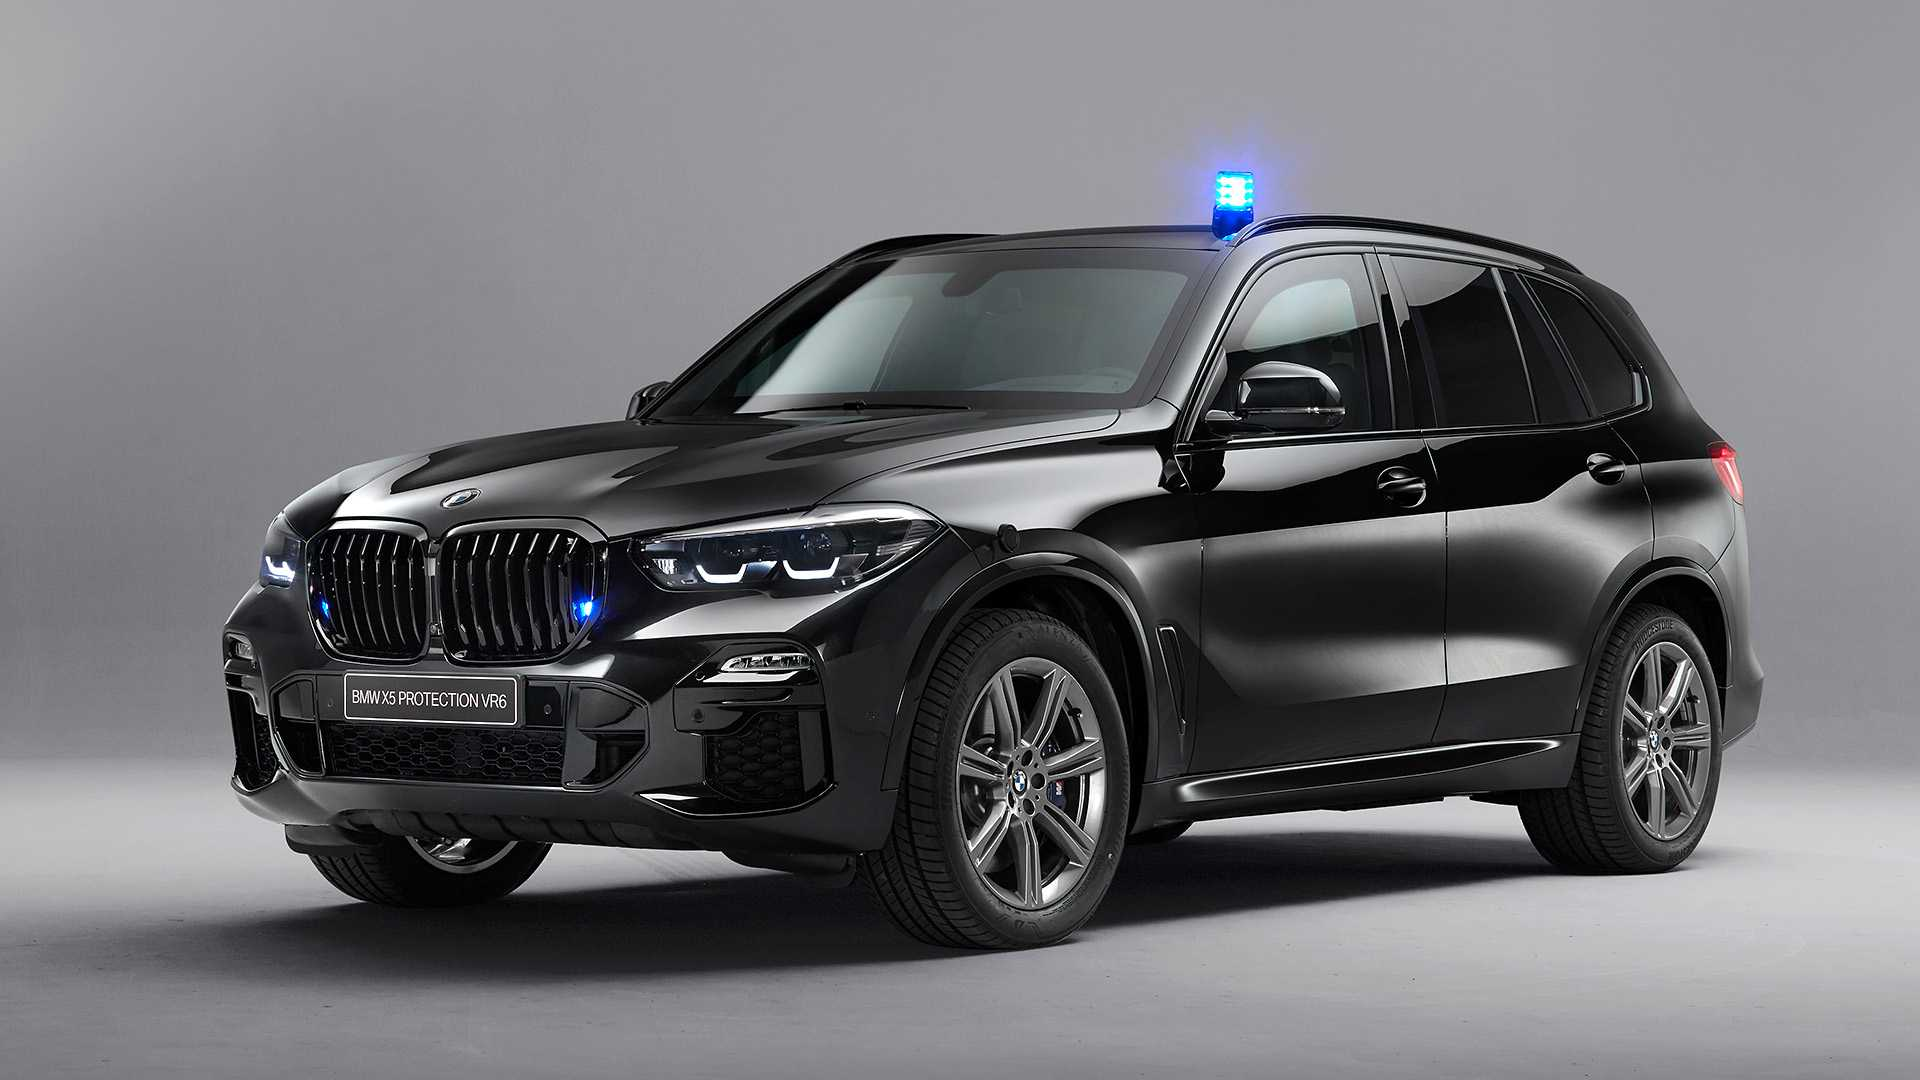 bmw-x5-protection-vr6-2019.jpg